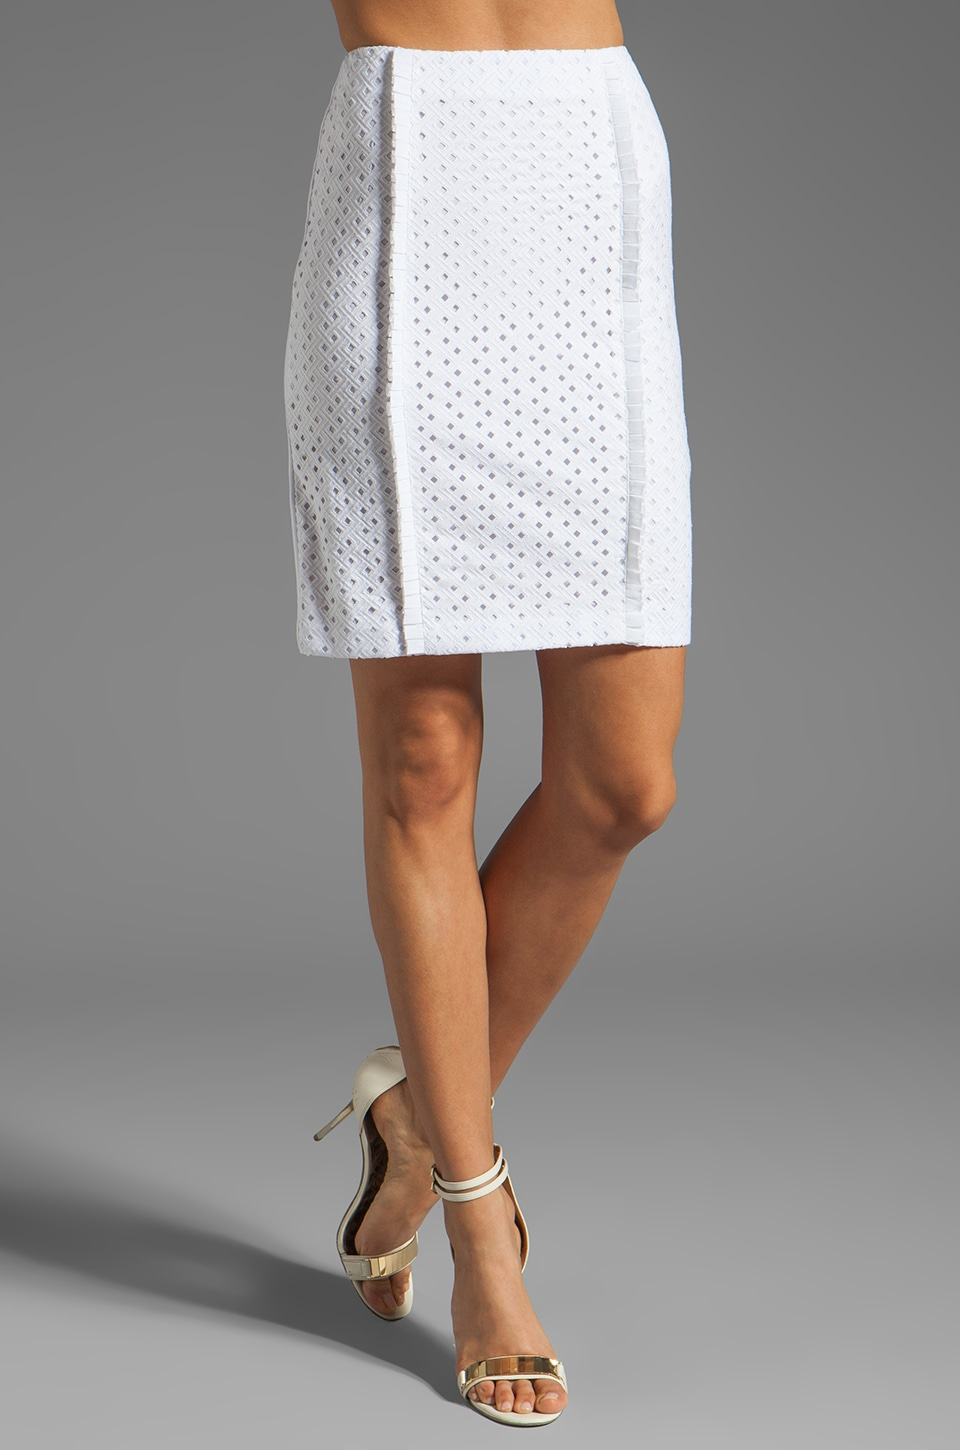 Catherine Malandrino Eyelet Pencil Skirt in Blanc